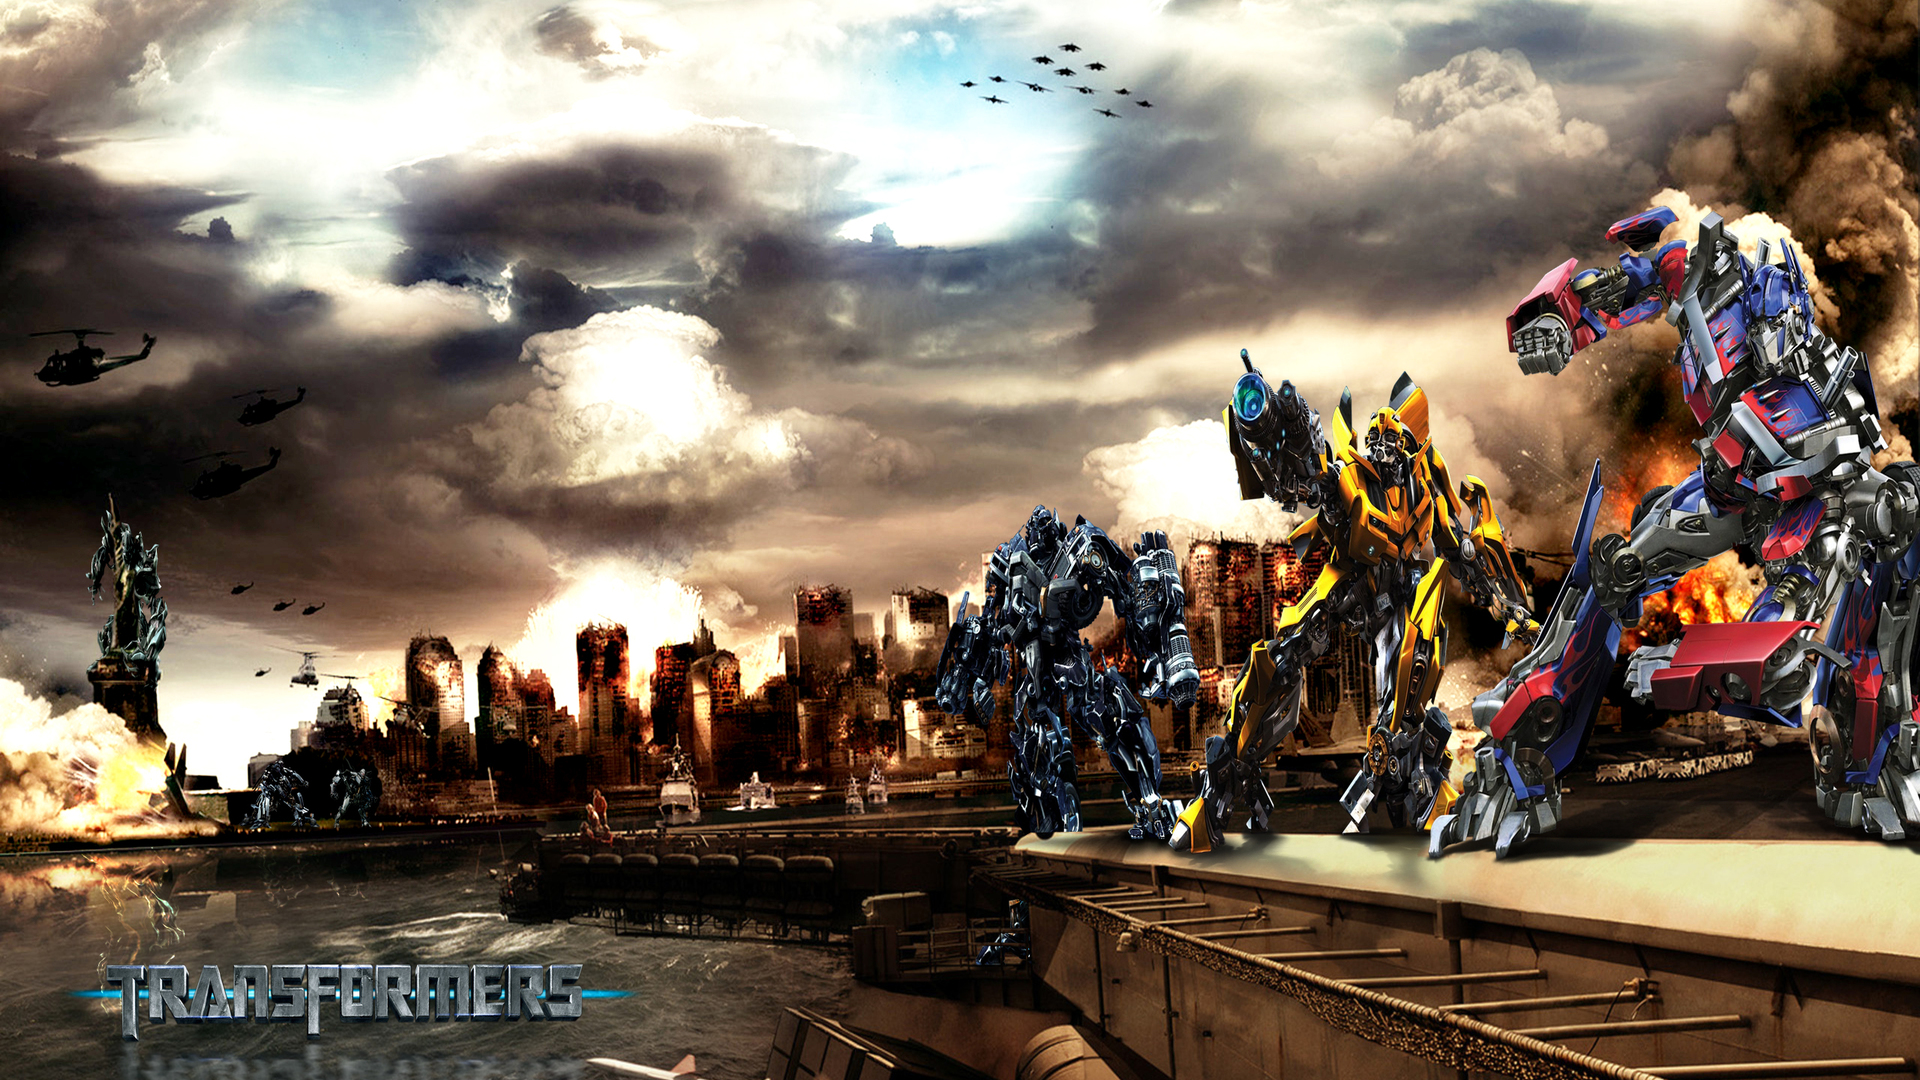 Hot new movies cars images transformers 1 the saga begins - Transformers desktop backgrounds ...